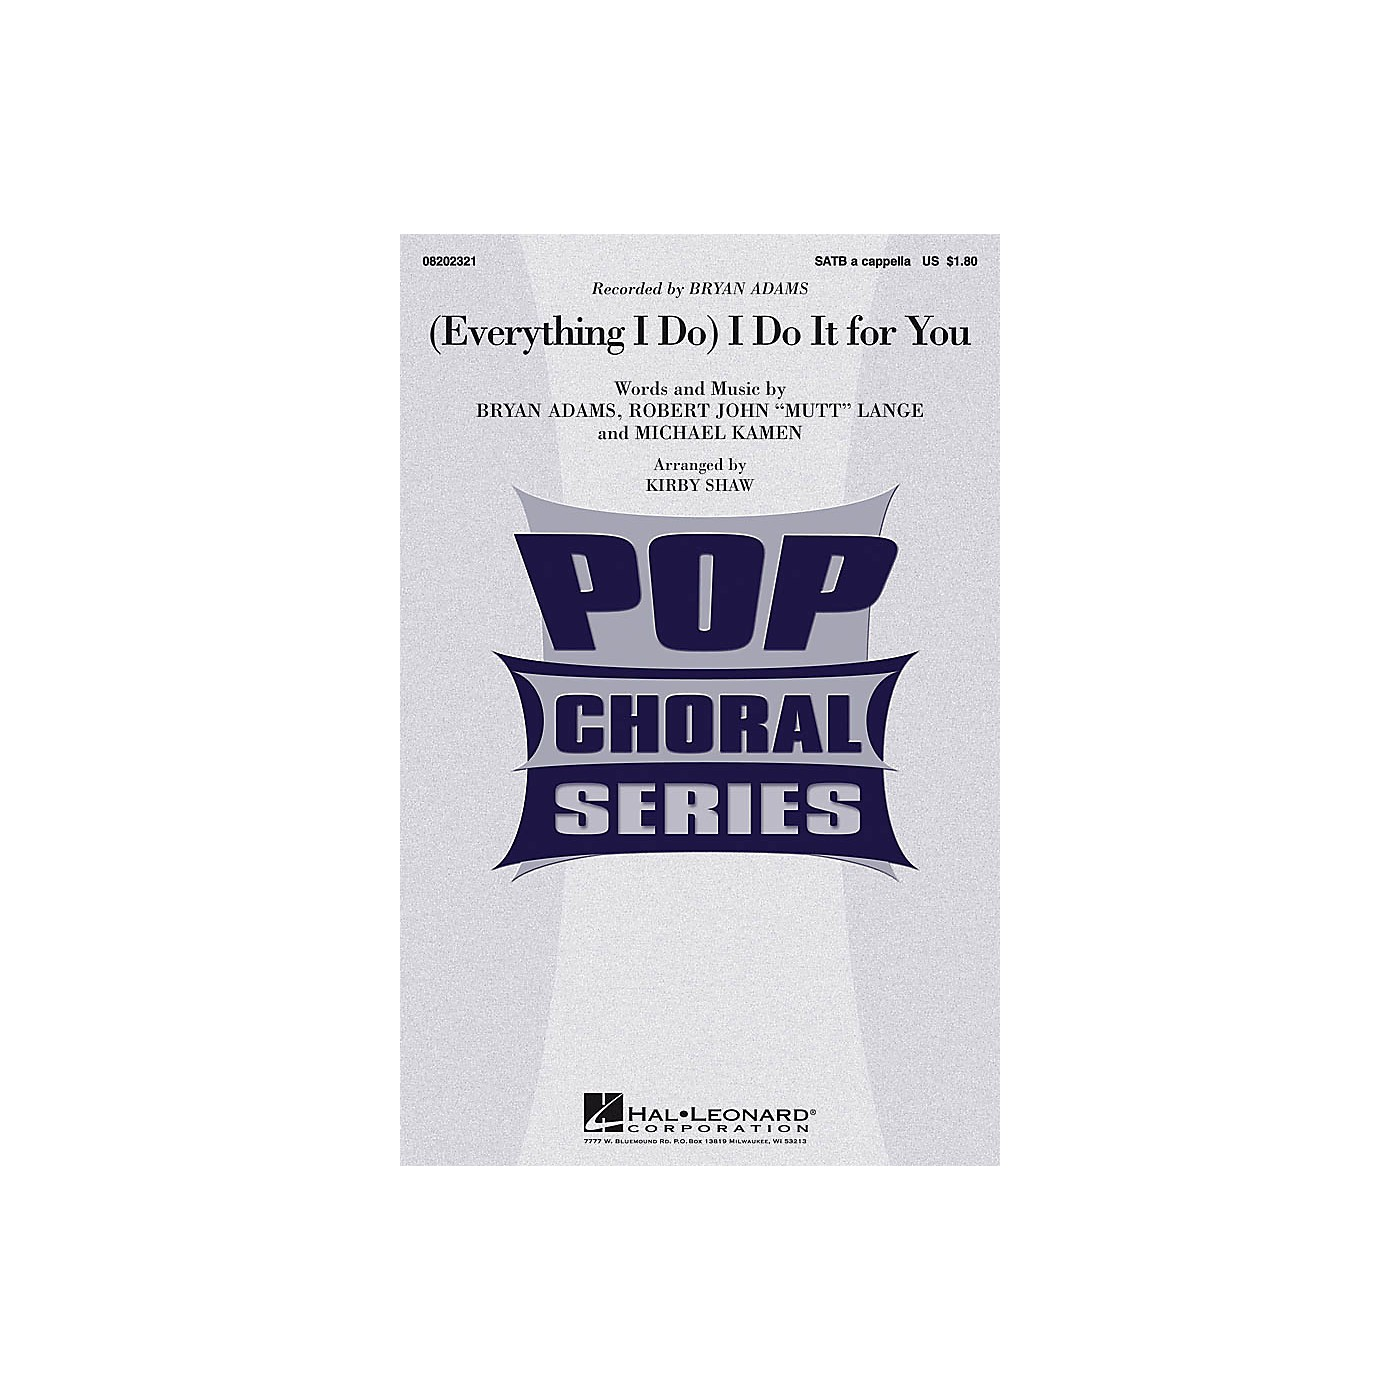 Hal Leonard (Everything I Do) I Do It for You SATB a cappella by Bryan Adams arranged by Kirby Shaw thumbnail